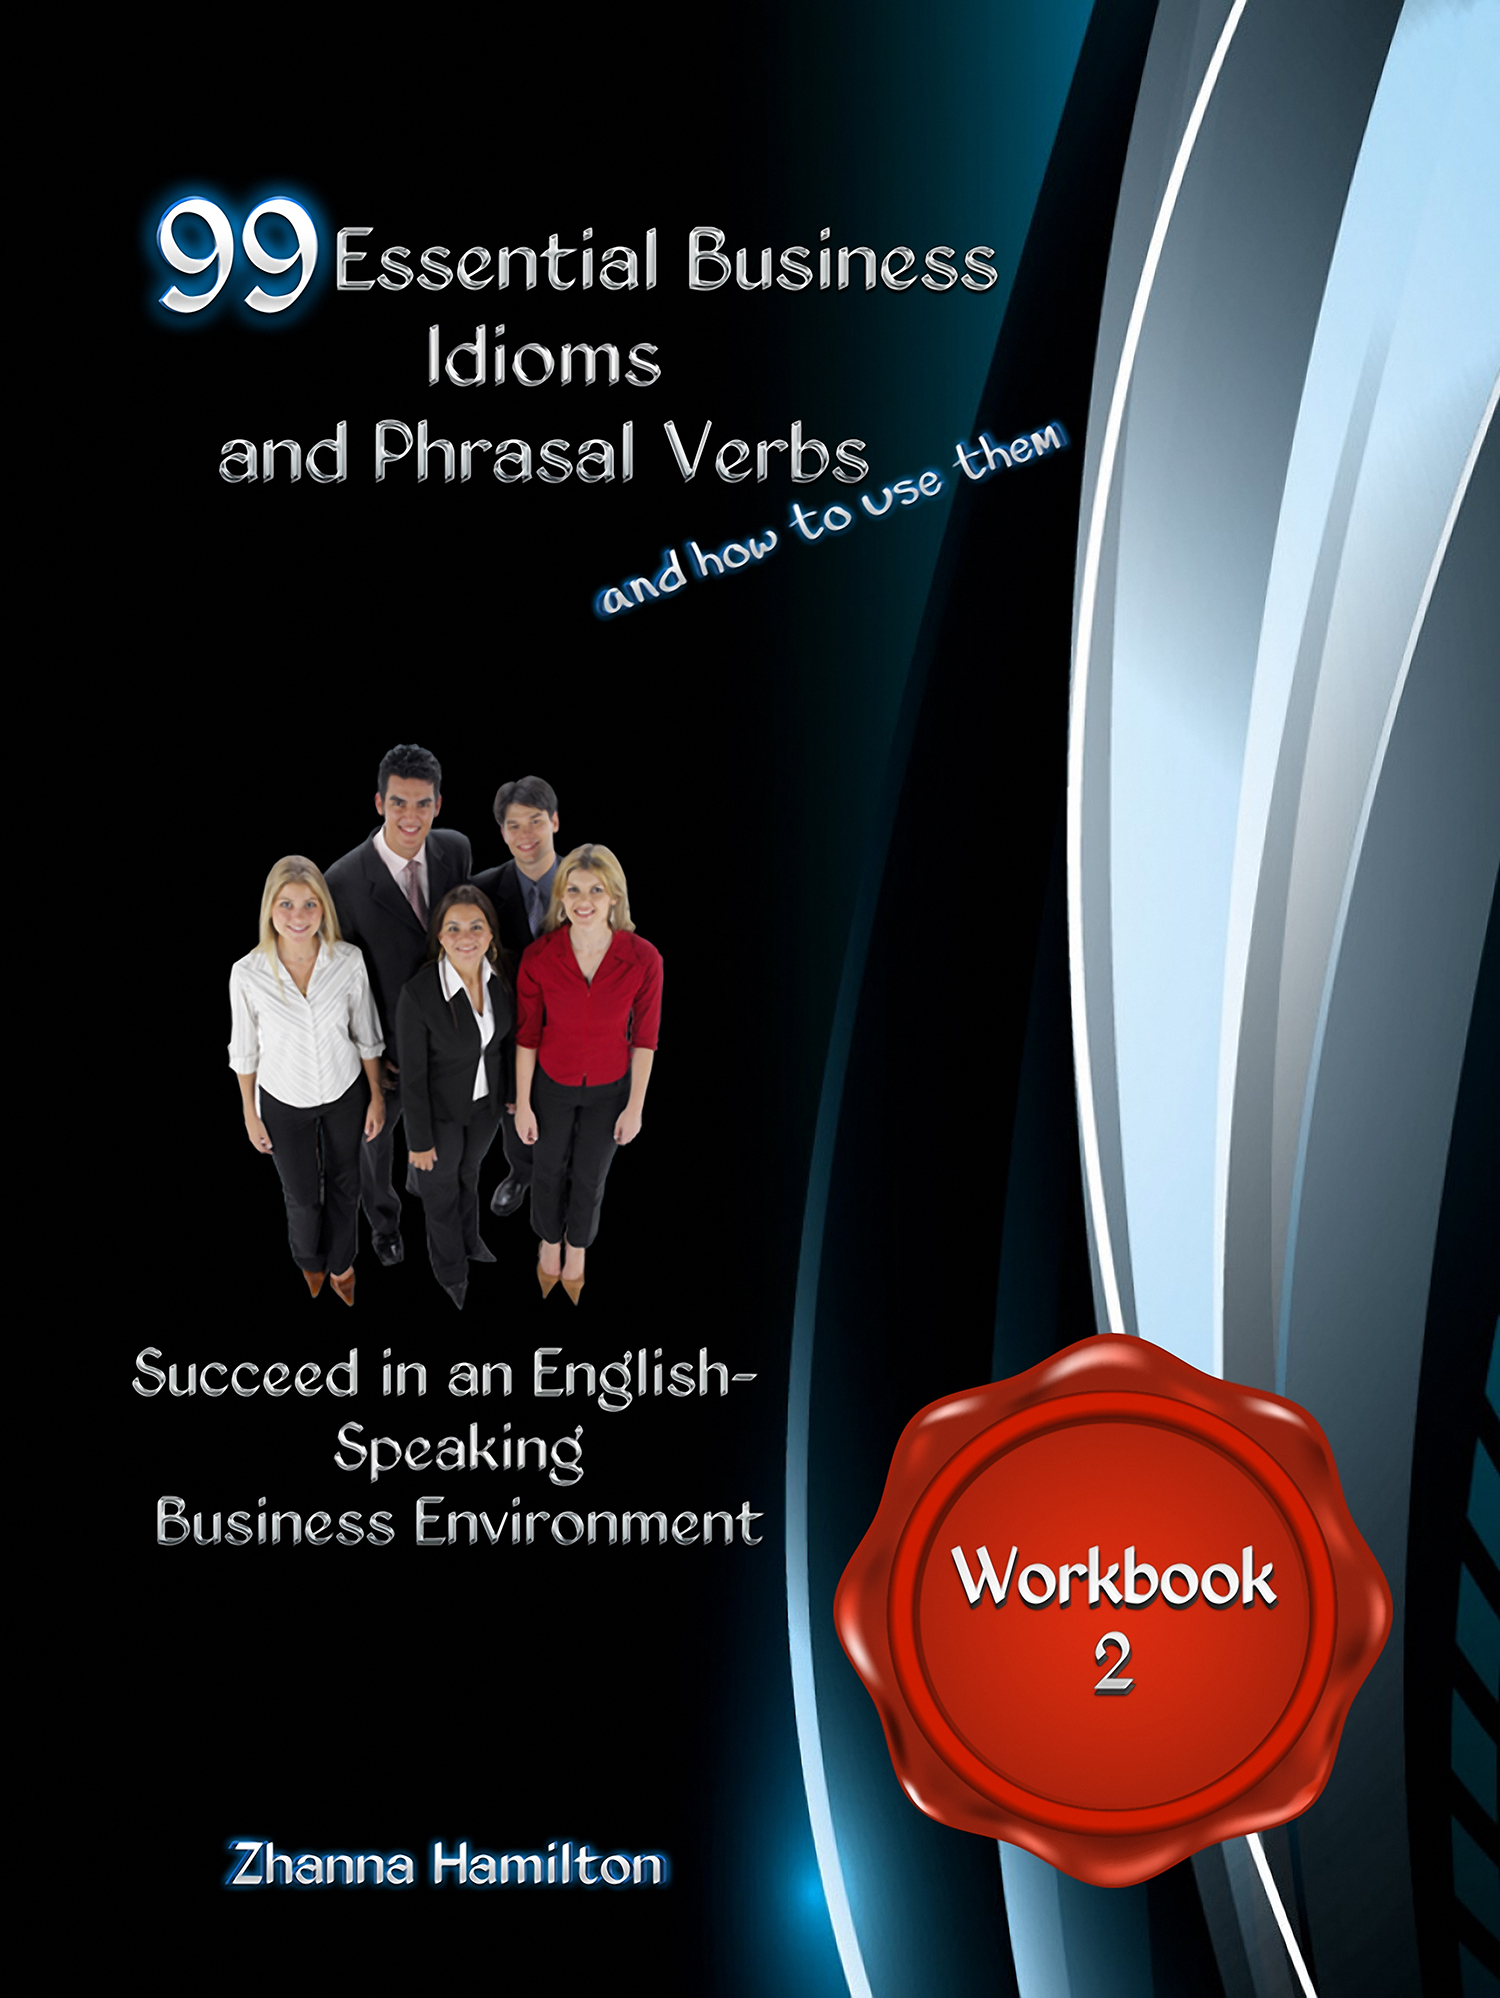 99 Essential Business Idioms and Phrasal Verbs: Succeed in an English-Speaking Business Environment - Workbook 2